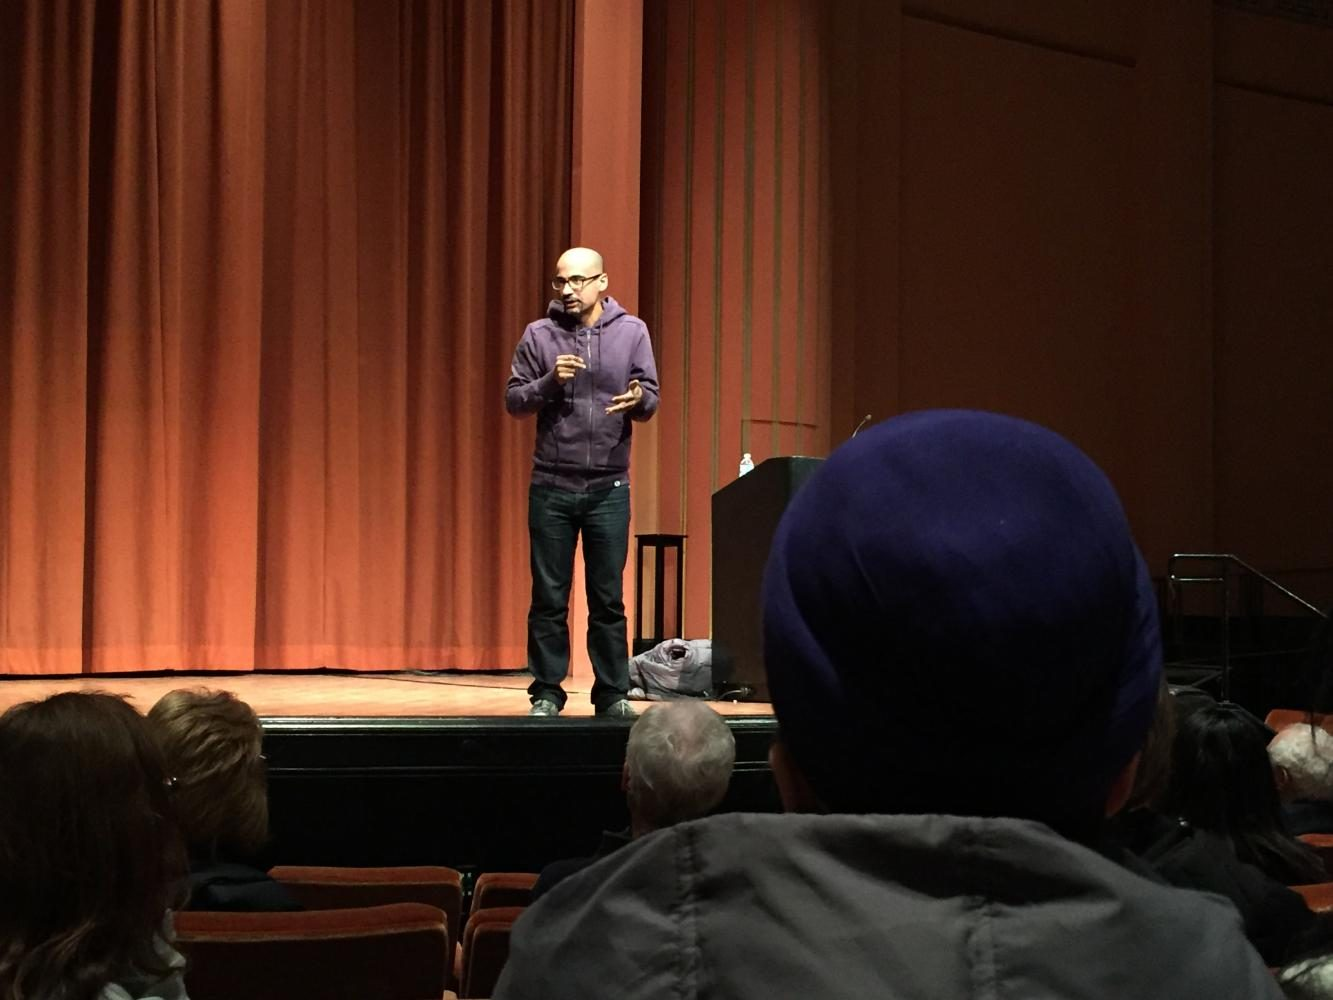 Junot Diaz gives a lecture at Rackham Auditorium